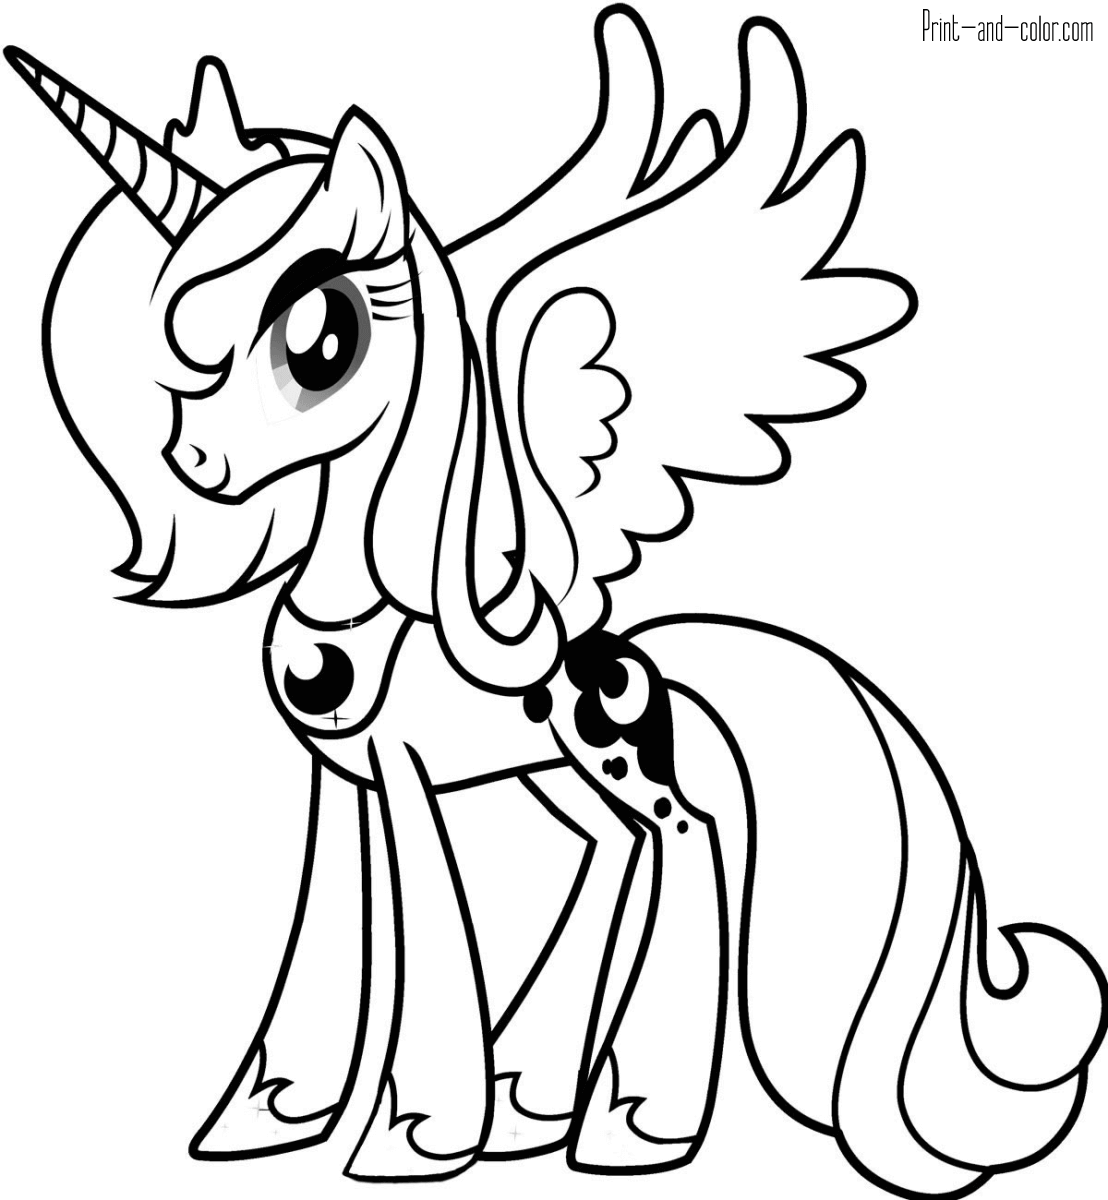 my little pony printable coloring pages my little pony coloring pages coloring pages for kids pony printable little my pages coloring